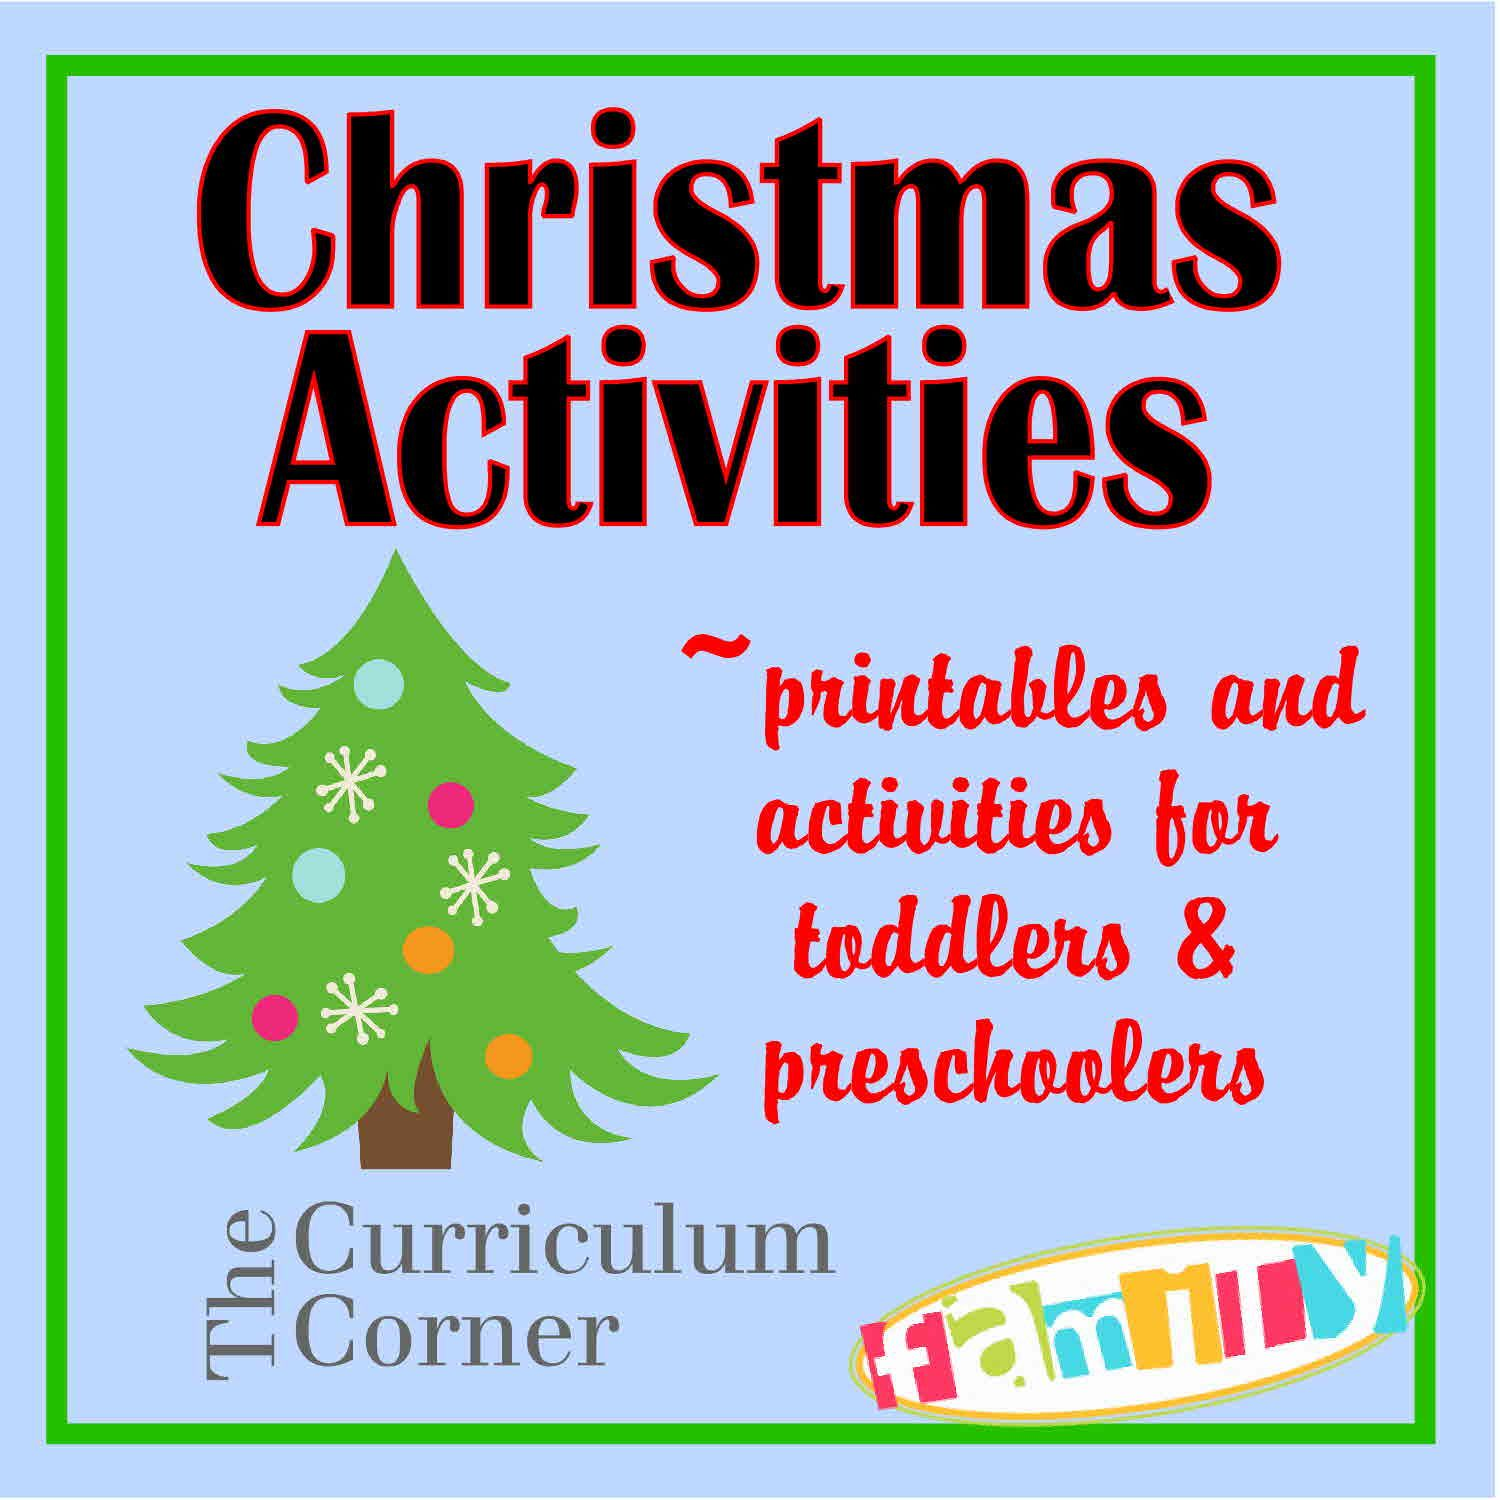 Christmas Activities And Printables For Toddlers